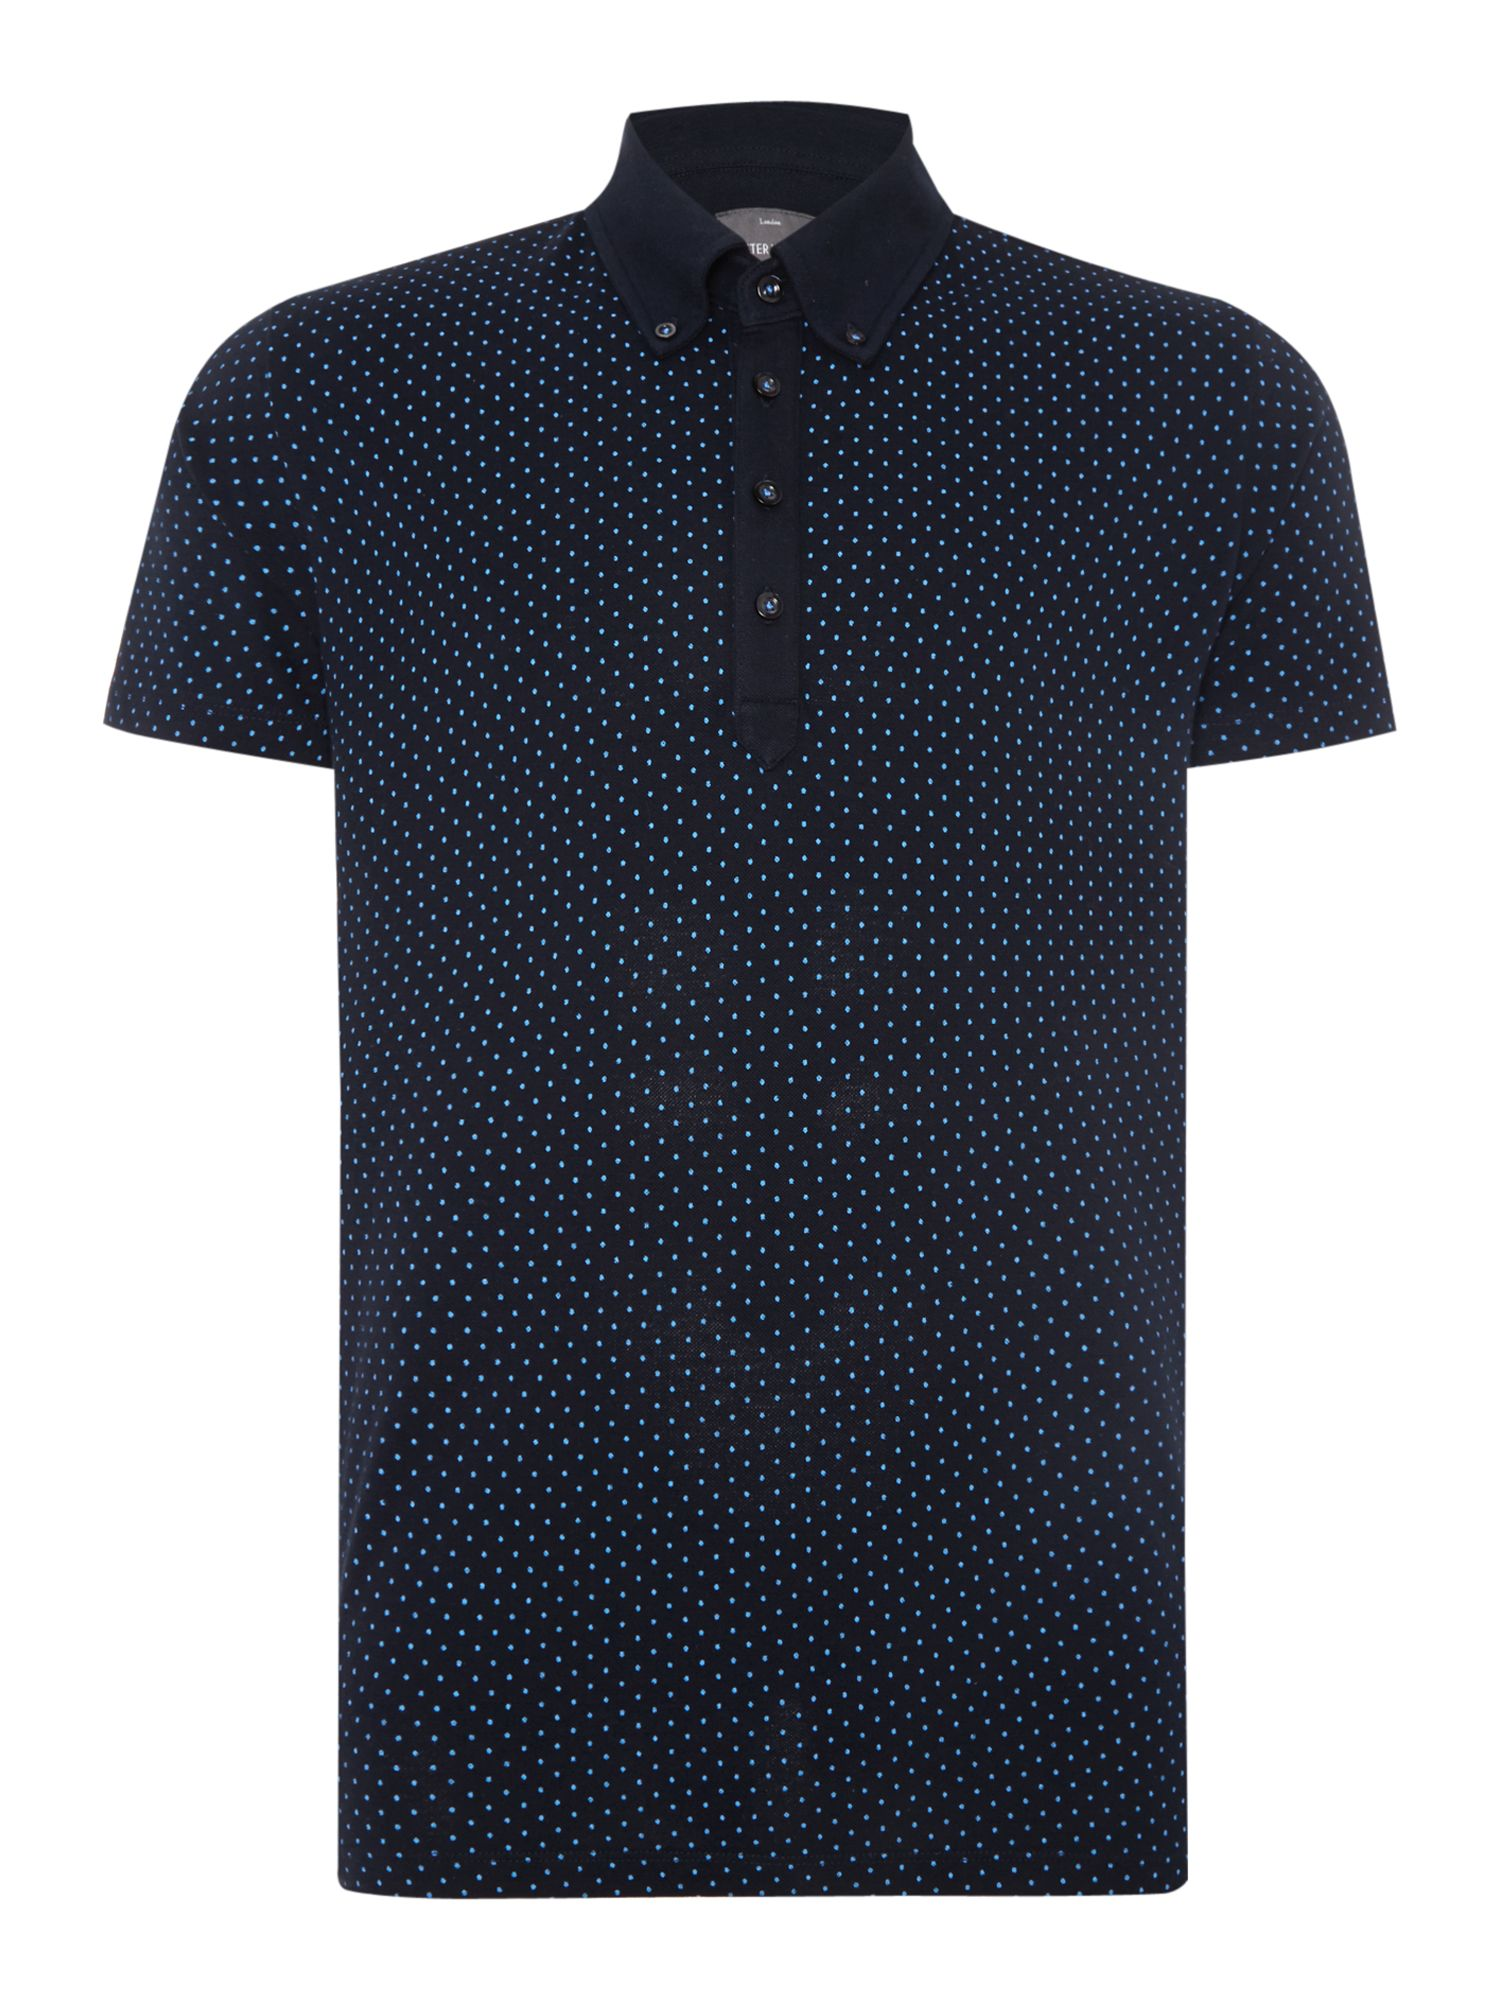 Men's Peter Werth Ritchie Polka Dot Slim Fit Polo Shirt, Blue